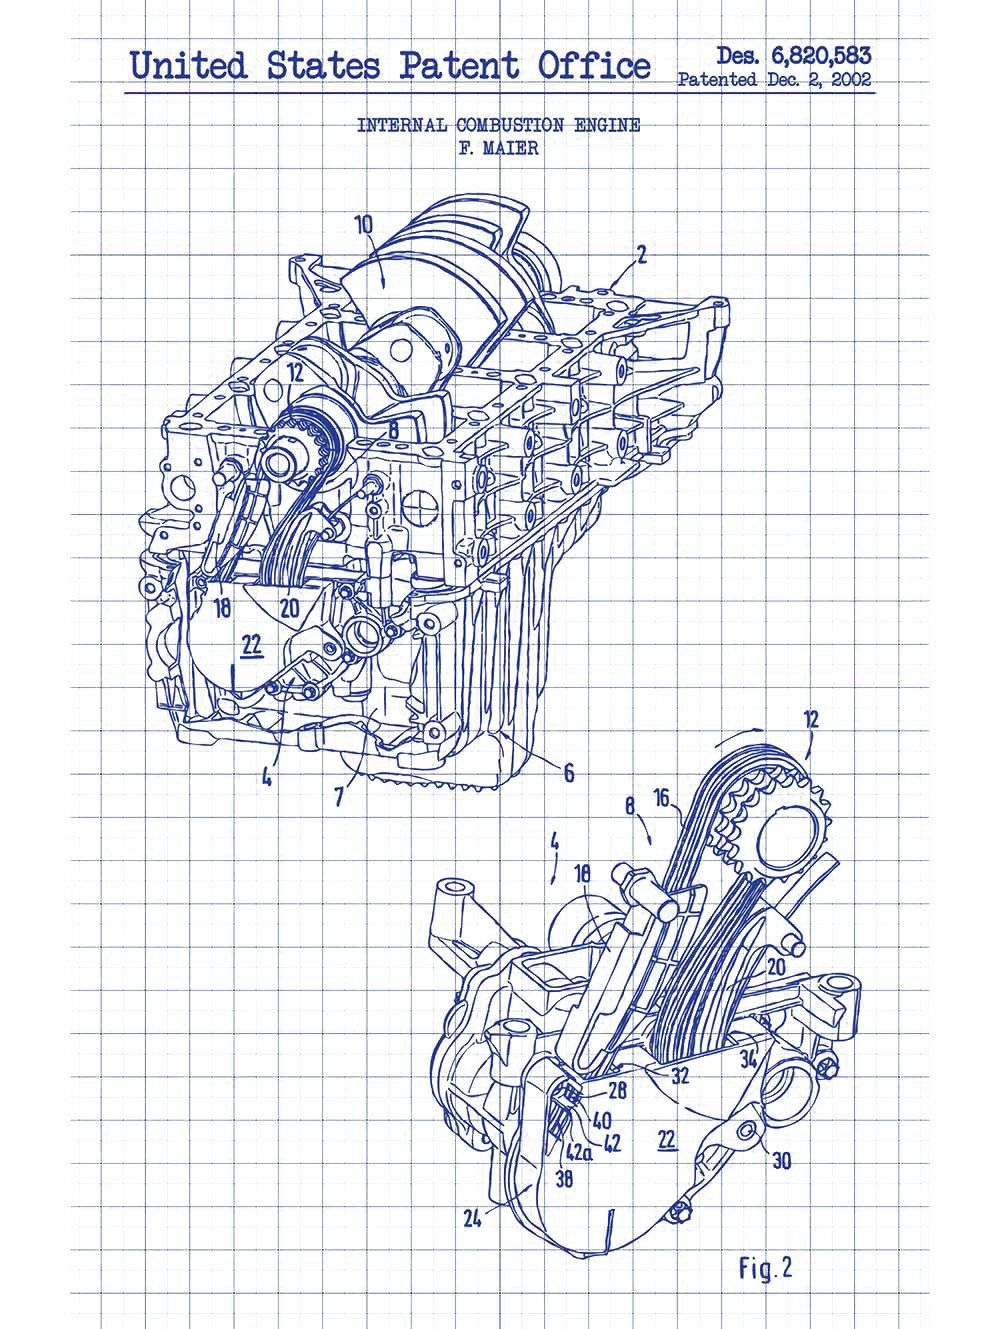 2002 Pat Engine Diagram Wiring Library Combustion No 1 F Maier